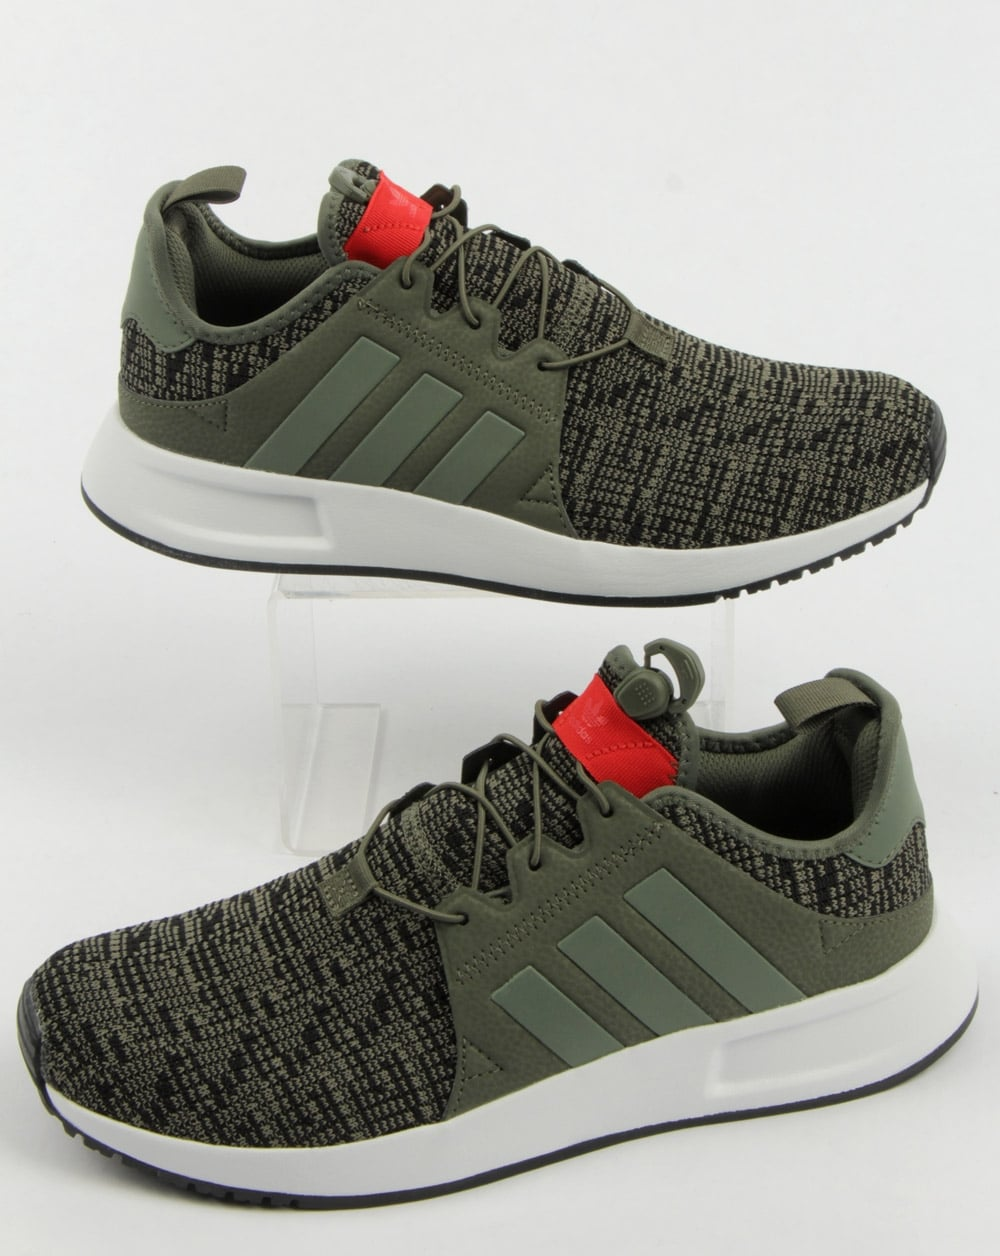 new concept ff01c 89f6f Adidas XPLR Trainers St Major Green/red